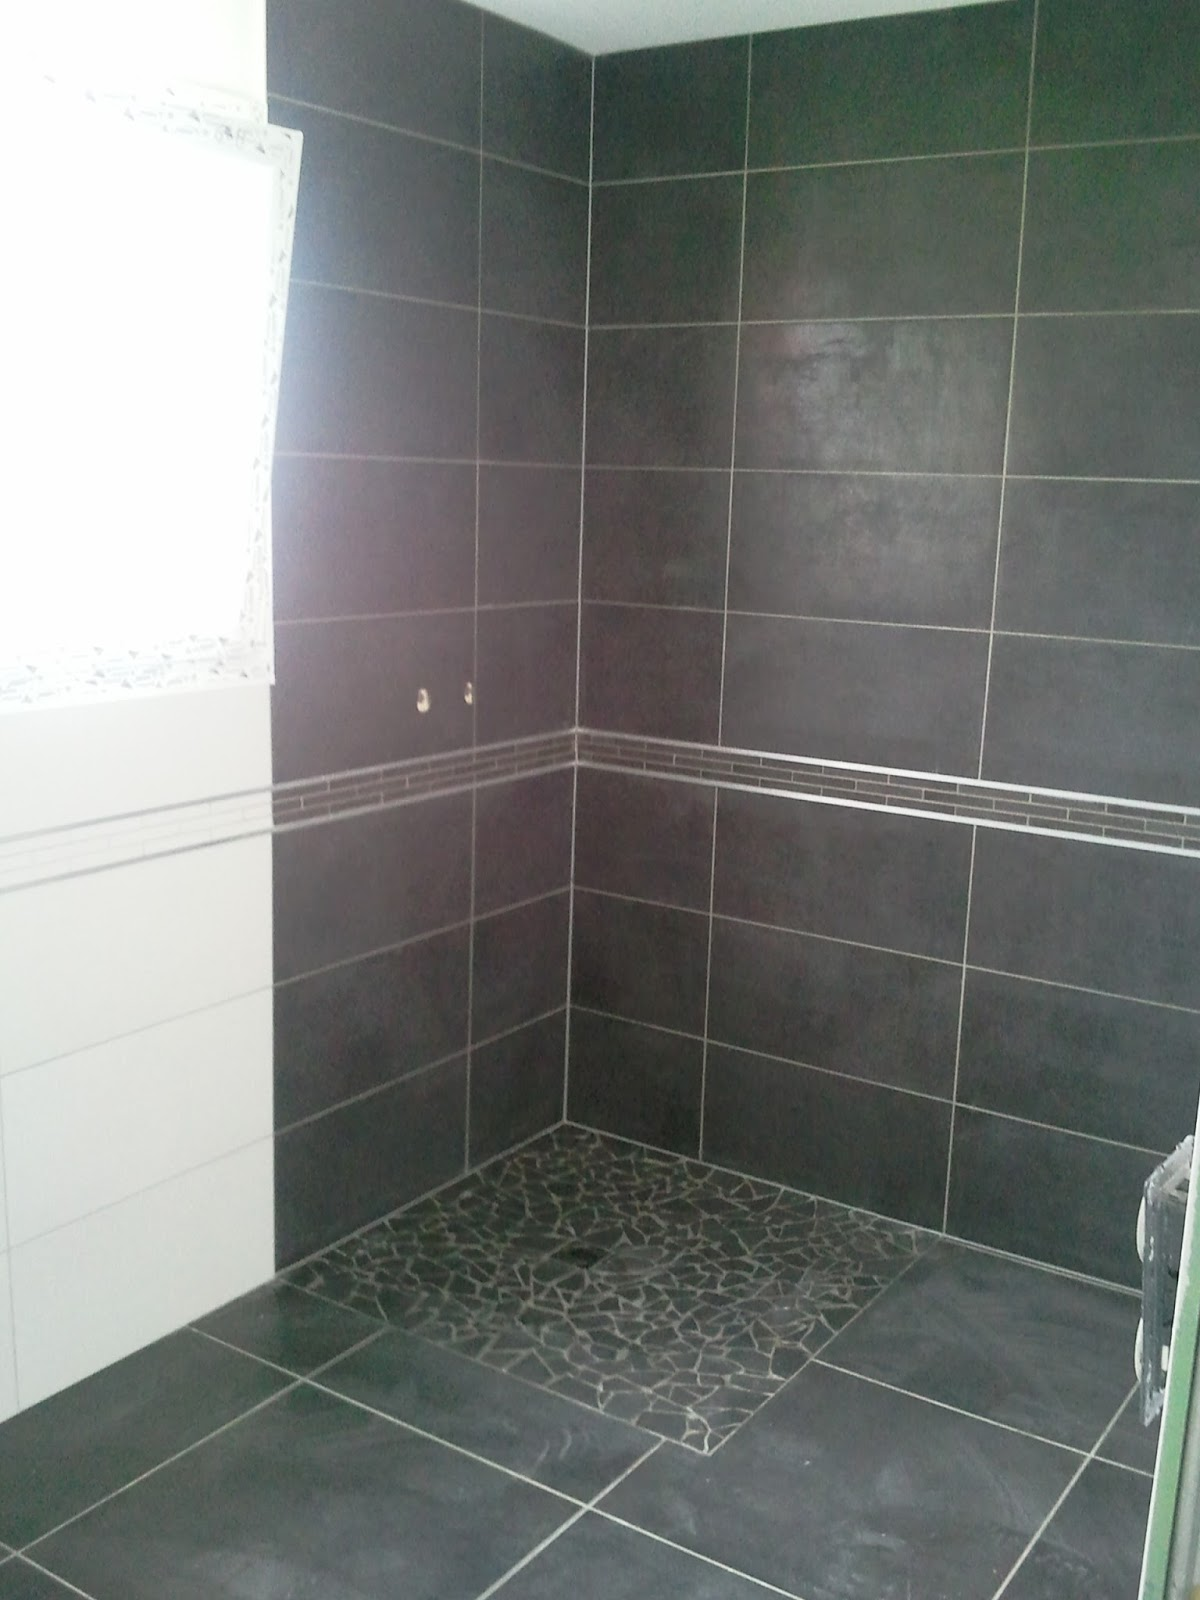 Bricolage de l 39 id e la r alisation douche l for Photo douche italienne carrelee